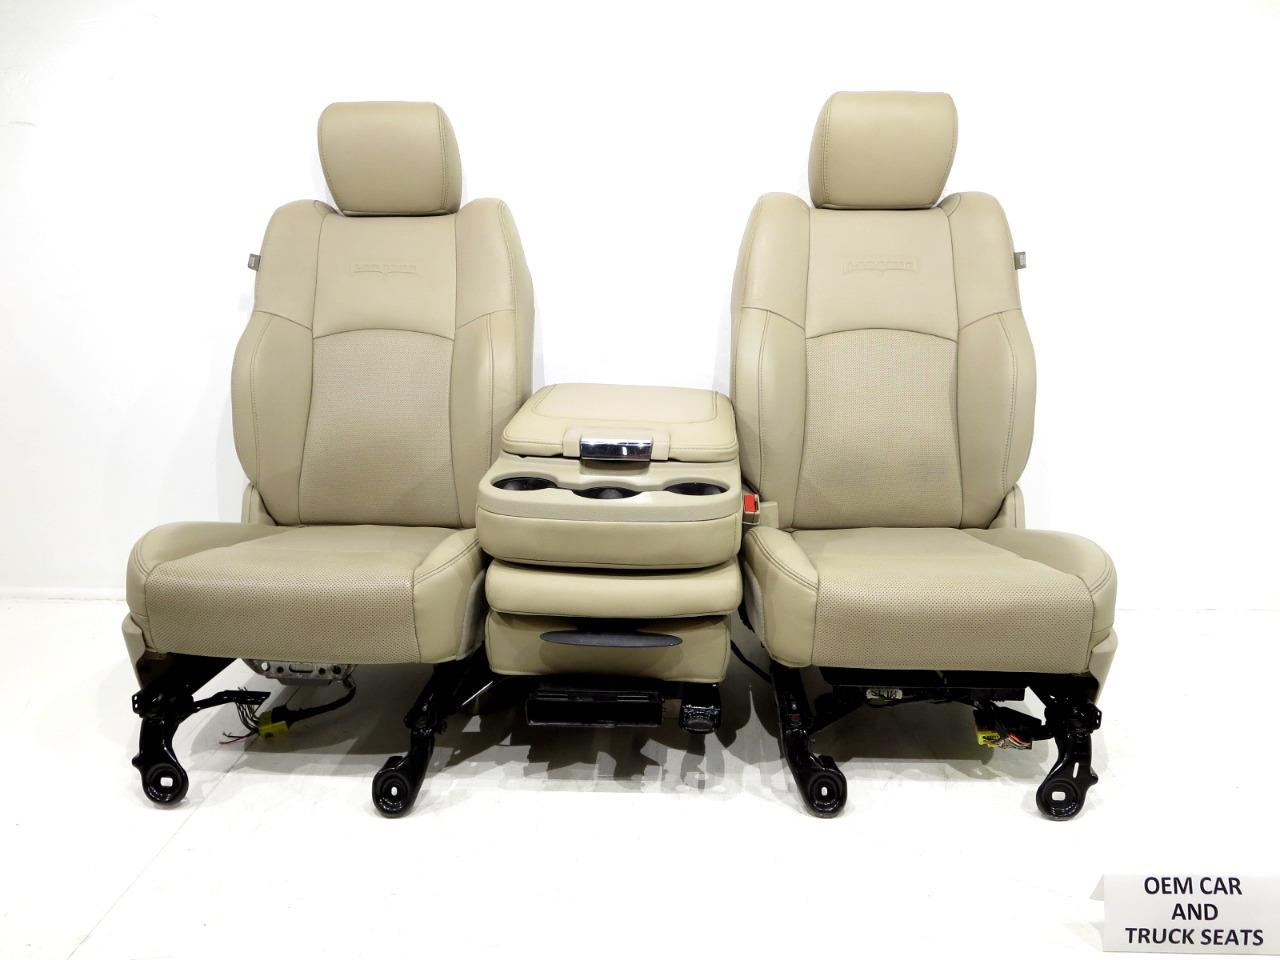 Superb Dodge Ram Leather Front Seats Heat A C With Jump Seat 2009 2010 2011 2012 2013 2014 2015 2016 2017 Lamtechconsult Wood Chair Design Ideas Lamtechconsultcom